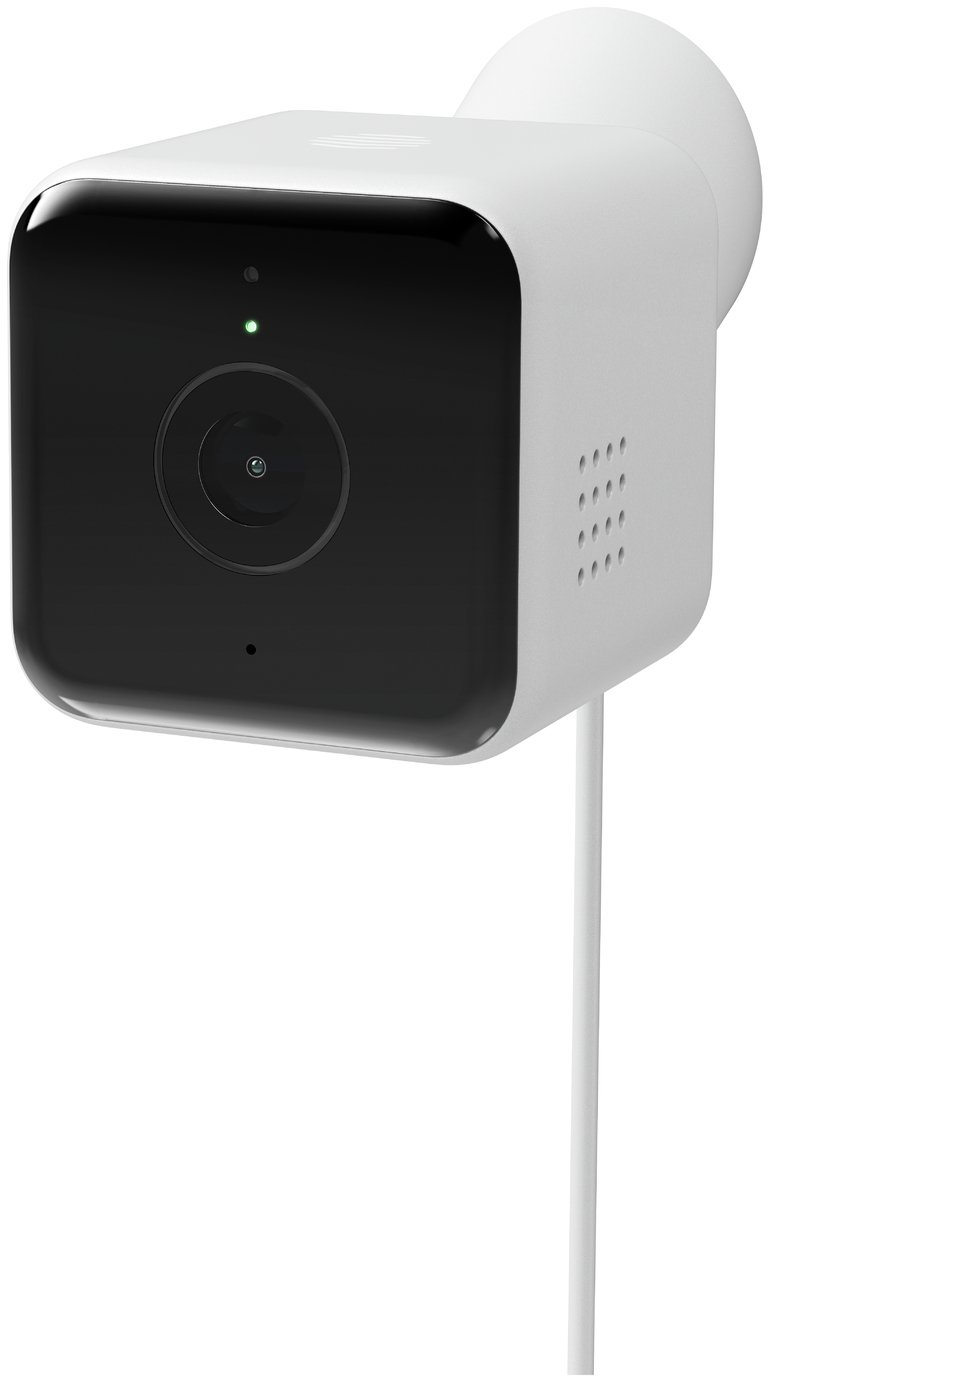 Hive View Outdoor Camera by Argos